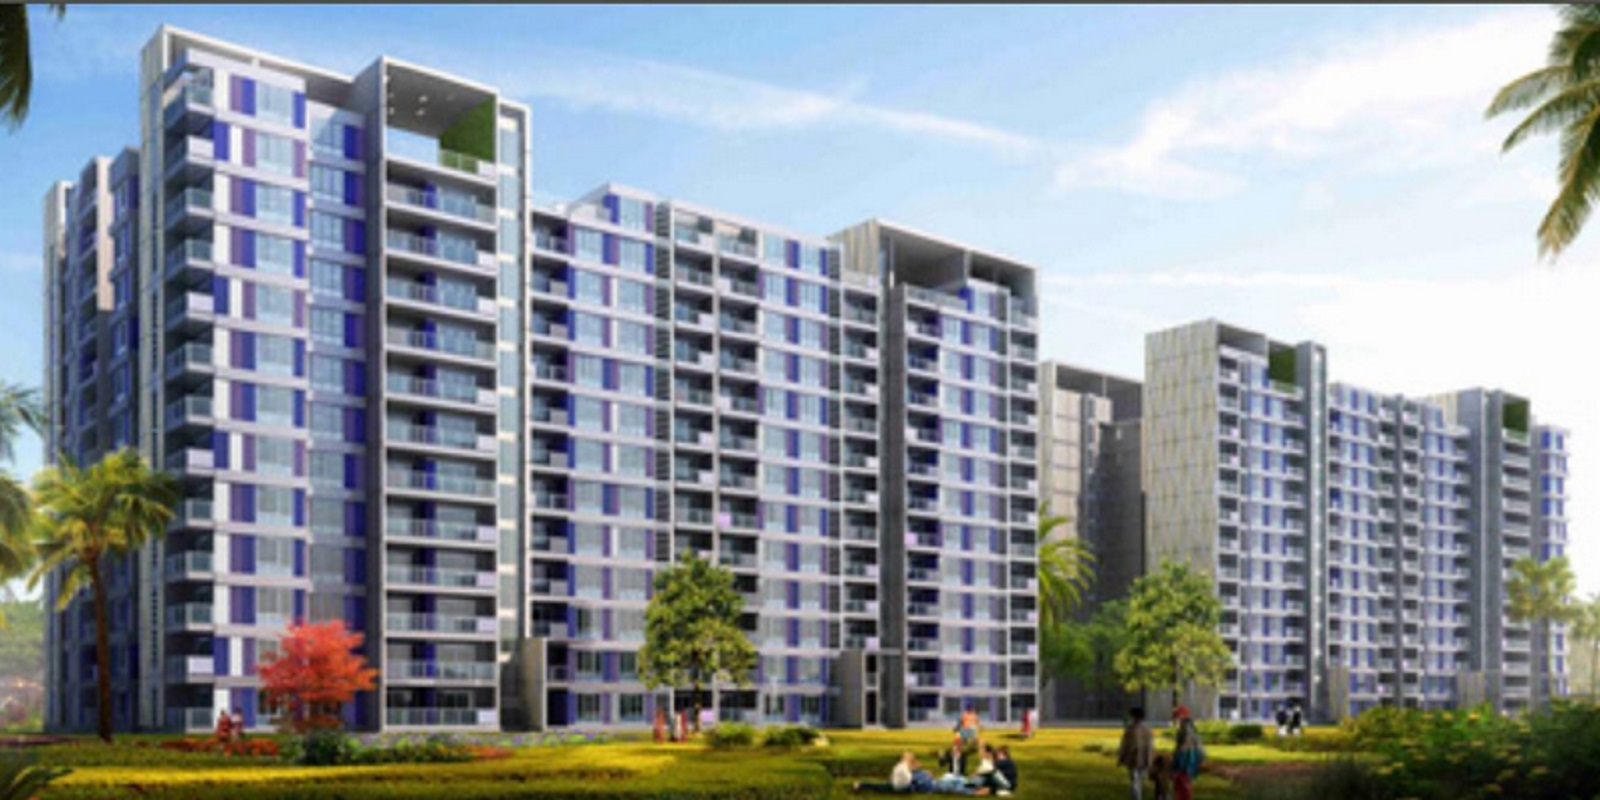 adarsh palm retreat tower ii project large image2